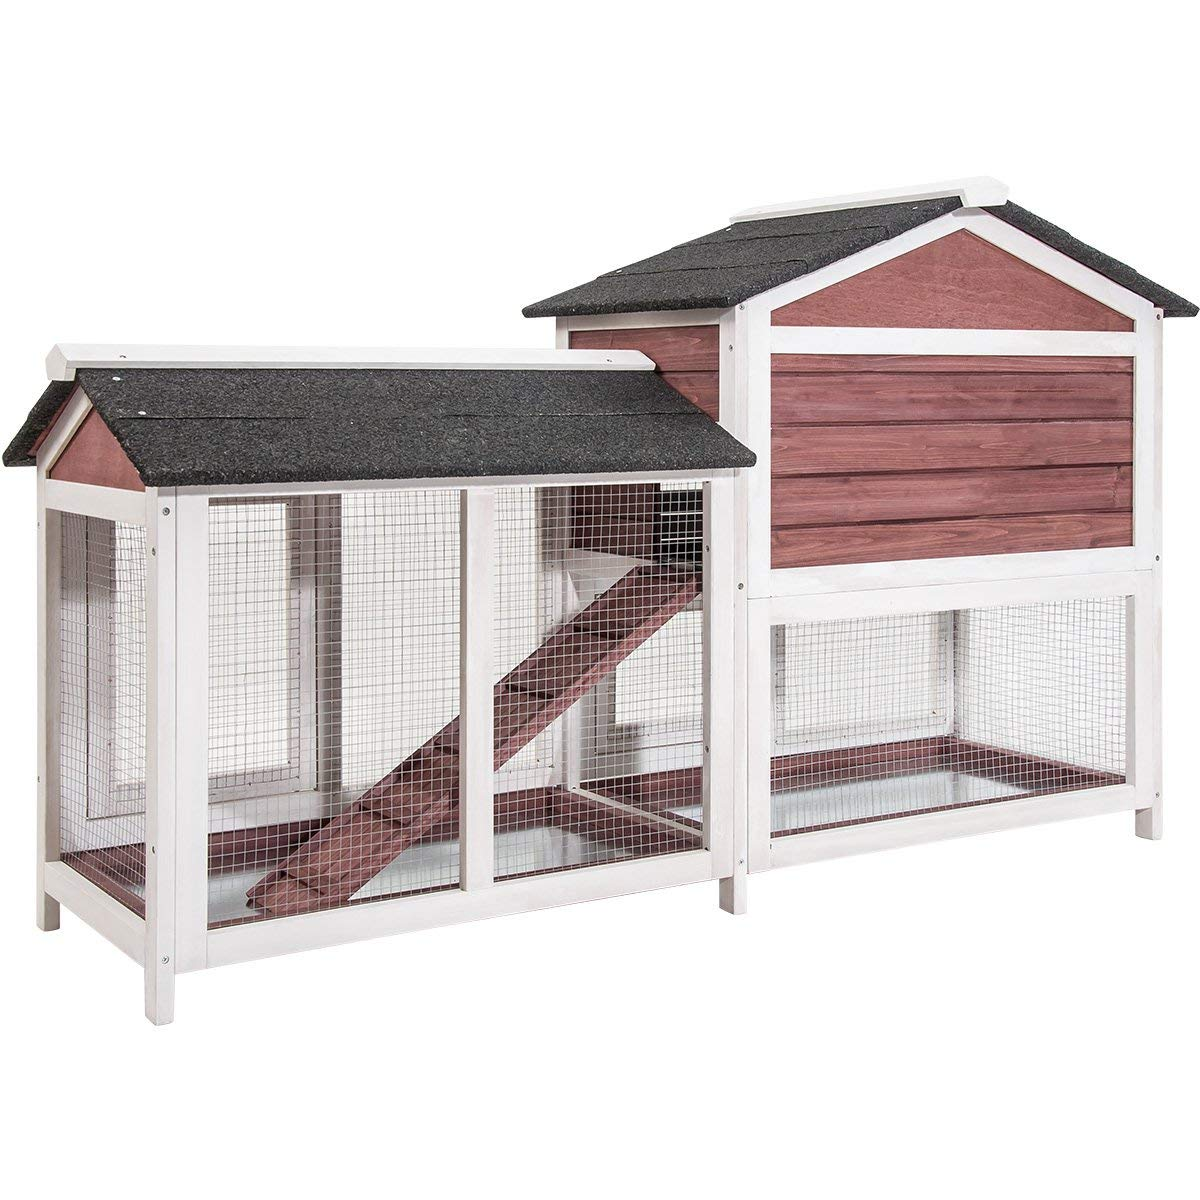 Purlove Pet Rabbit Hutch Wooden House Chicken Coop for Small Animals (Rabbit Hutch #4) by Purlove (Image #7)